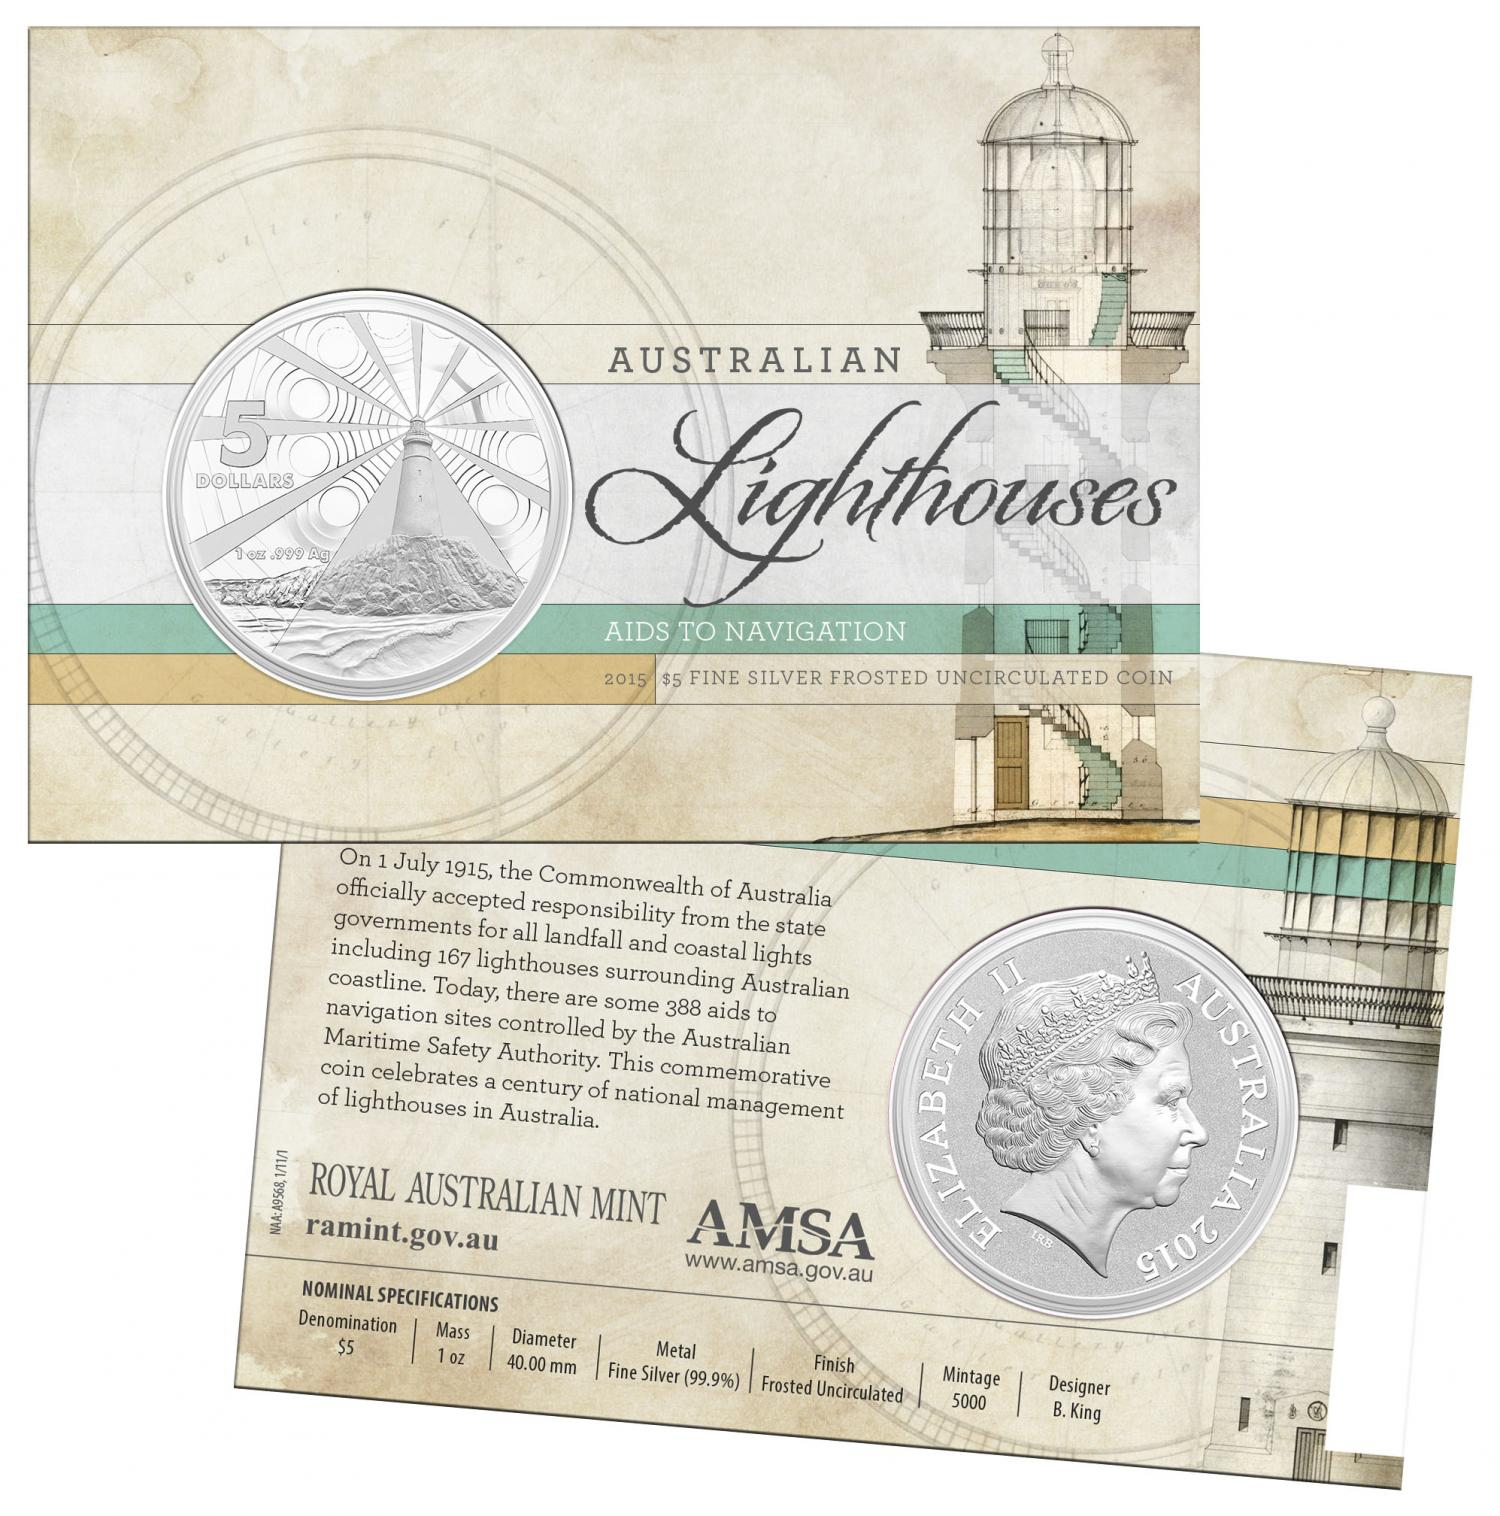 Thumbnail for 2015 Australian Lighthouses $5.00 Frosted Uncirculated Coin